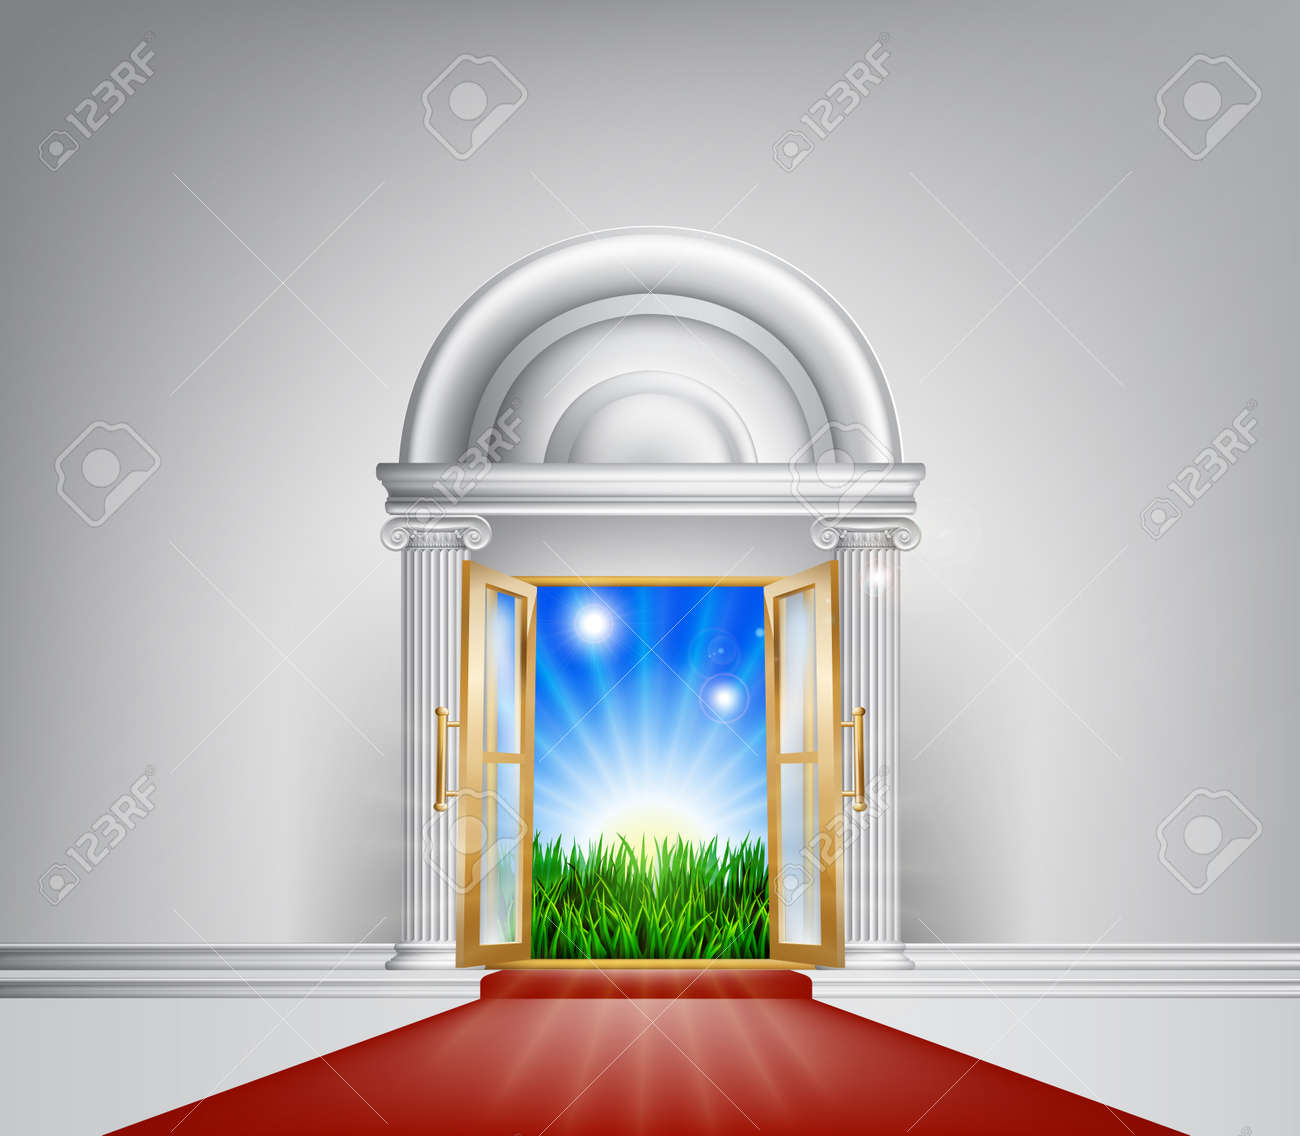 A grand entrance door with red carpet leading to it opening onto a beautiful dawn over a green field Stock Vector - 24948376